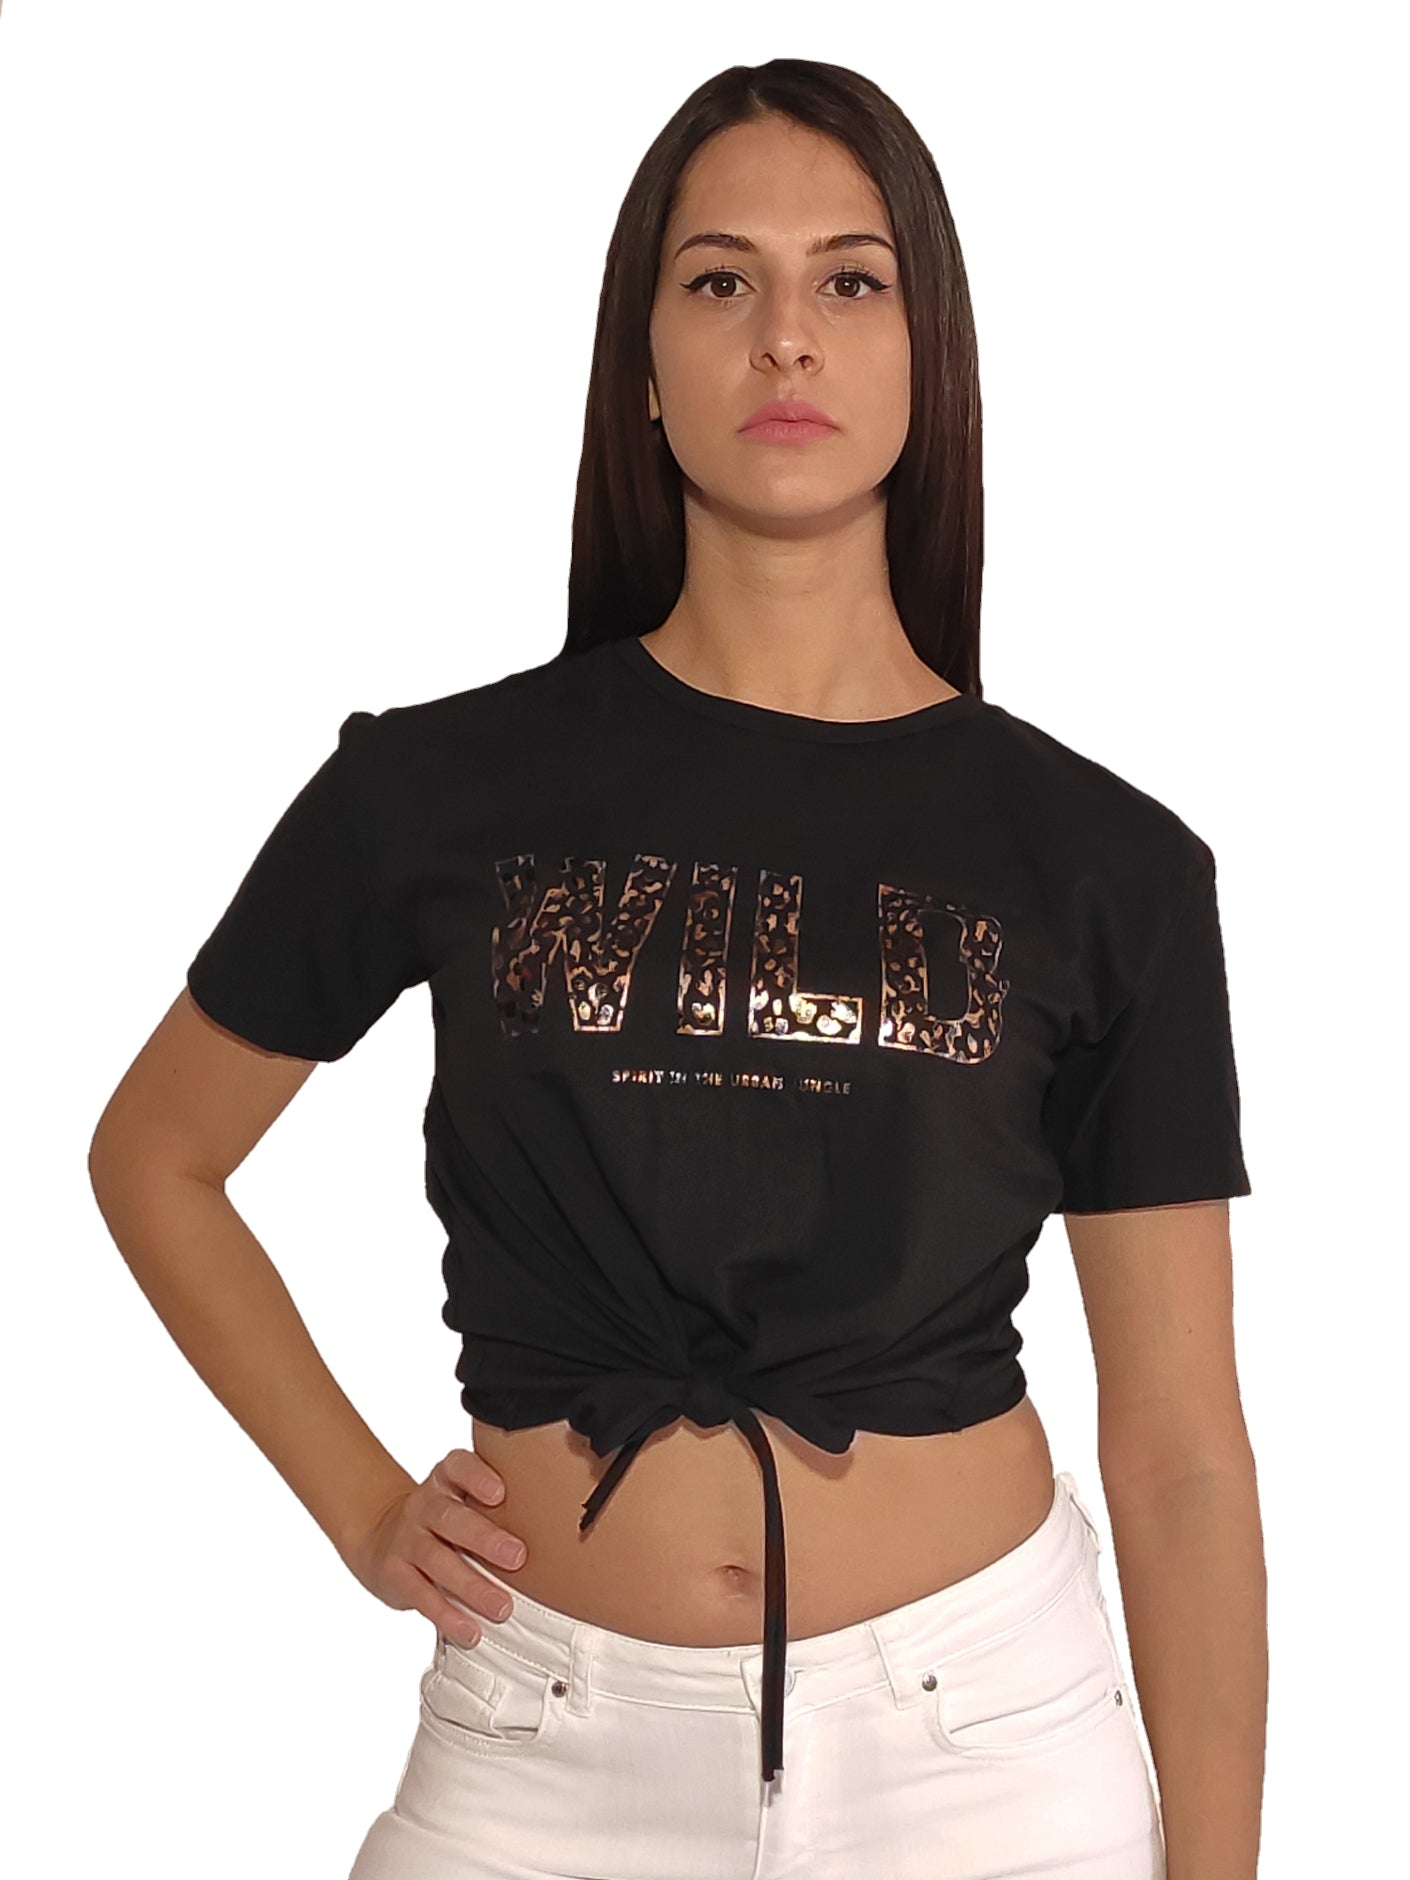 girl-wears-black-crop-top-with-wild-stamp-front